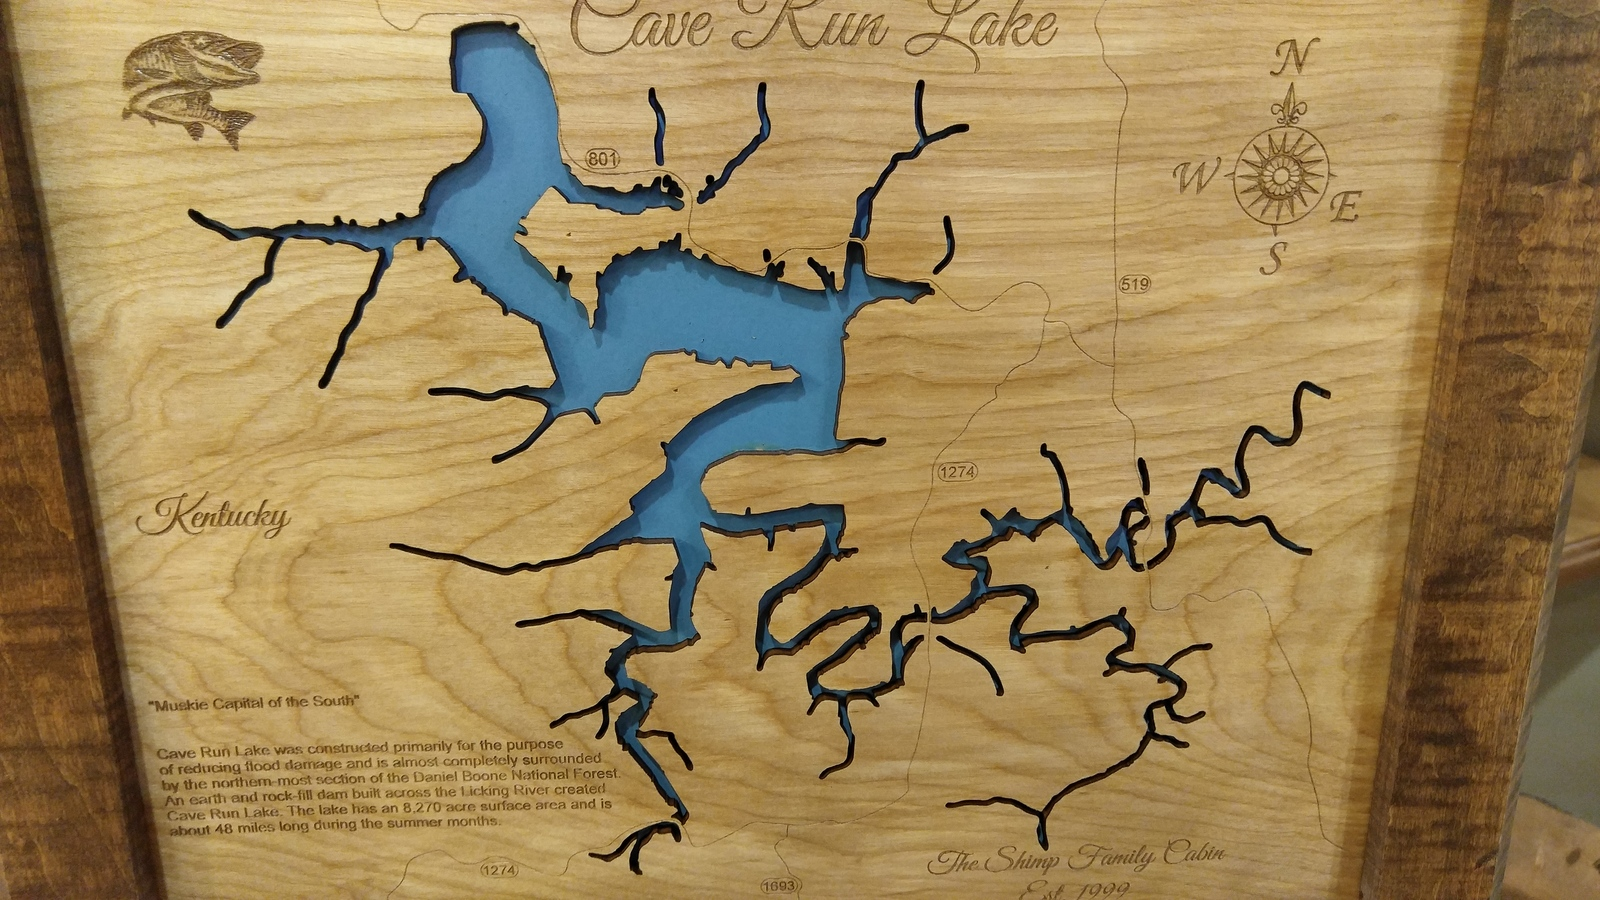 Cave Run Lake, Kentucky - Laser Cut Wood Map and 50 similar ... Cave Run Lake Map on cave run fishing, cave run camping, dale hollow reservoir map, cumberland river map, cave lake fishing, cave lake ky, red river gorge climbing map, the land between lakes map, cave run zilpo, cave run marina, cave run multiplication, daniel boone forest map, ohio river map, cumberland falls map, united states map,